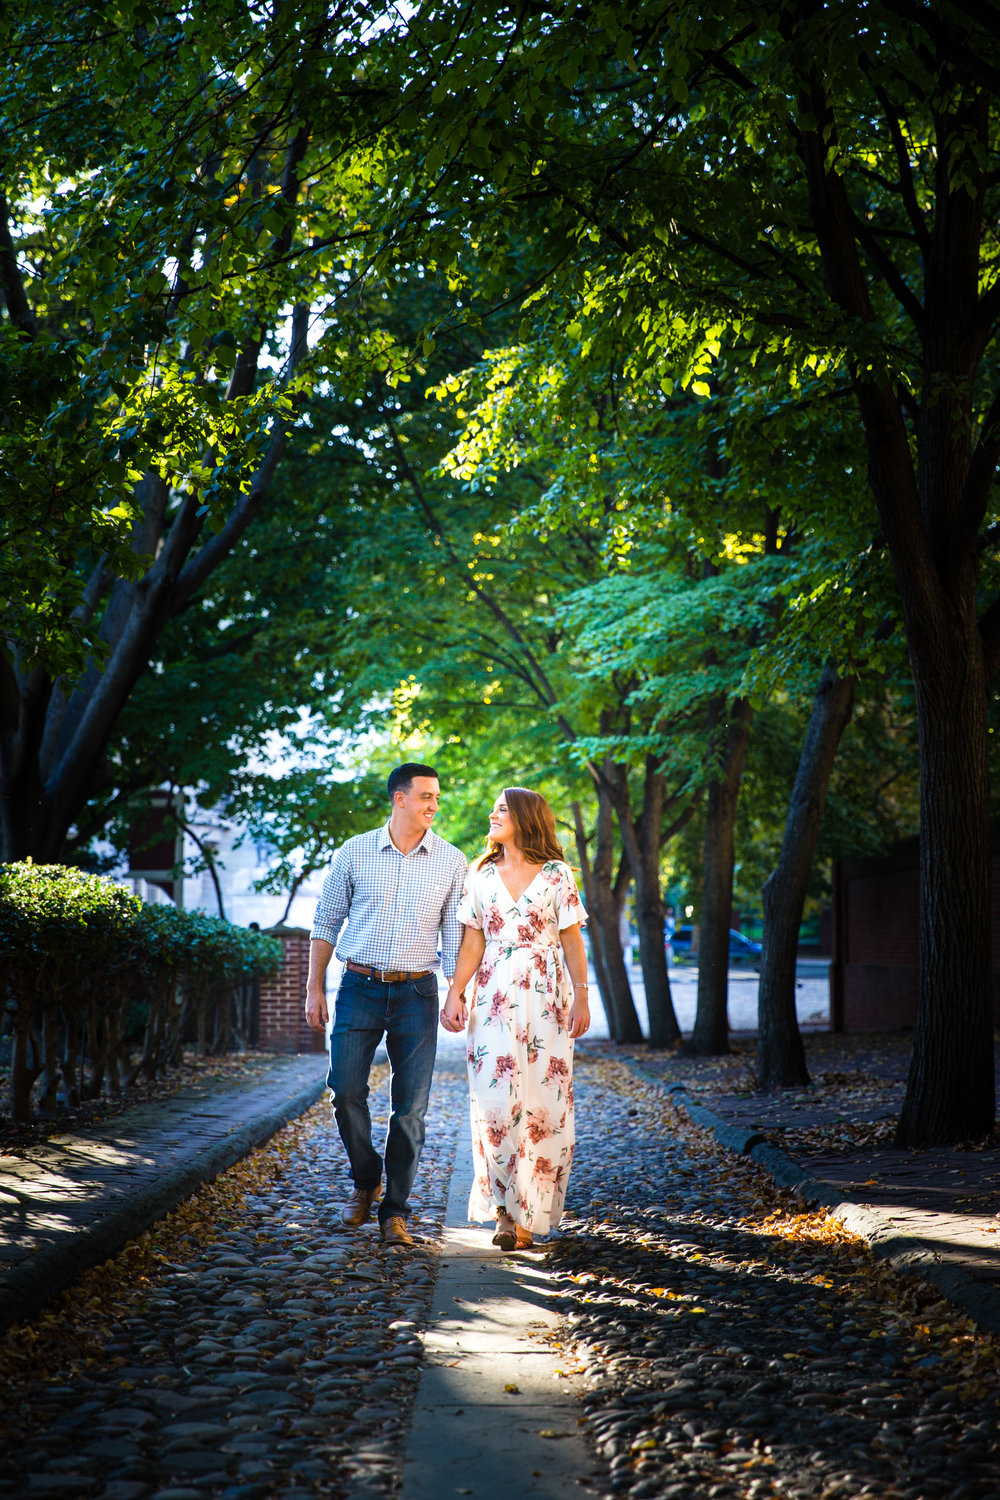 OLD CITY PHILADELPHIA ENGAGEMENT PHOTOS LOVESTRUCK PICTURES - 014.jpg